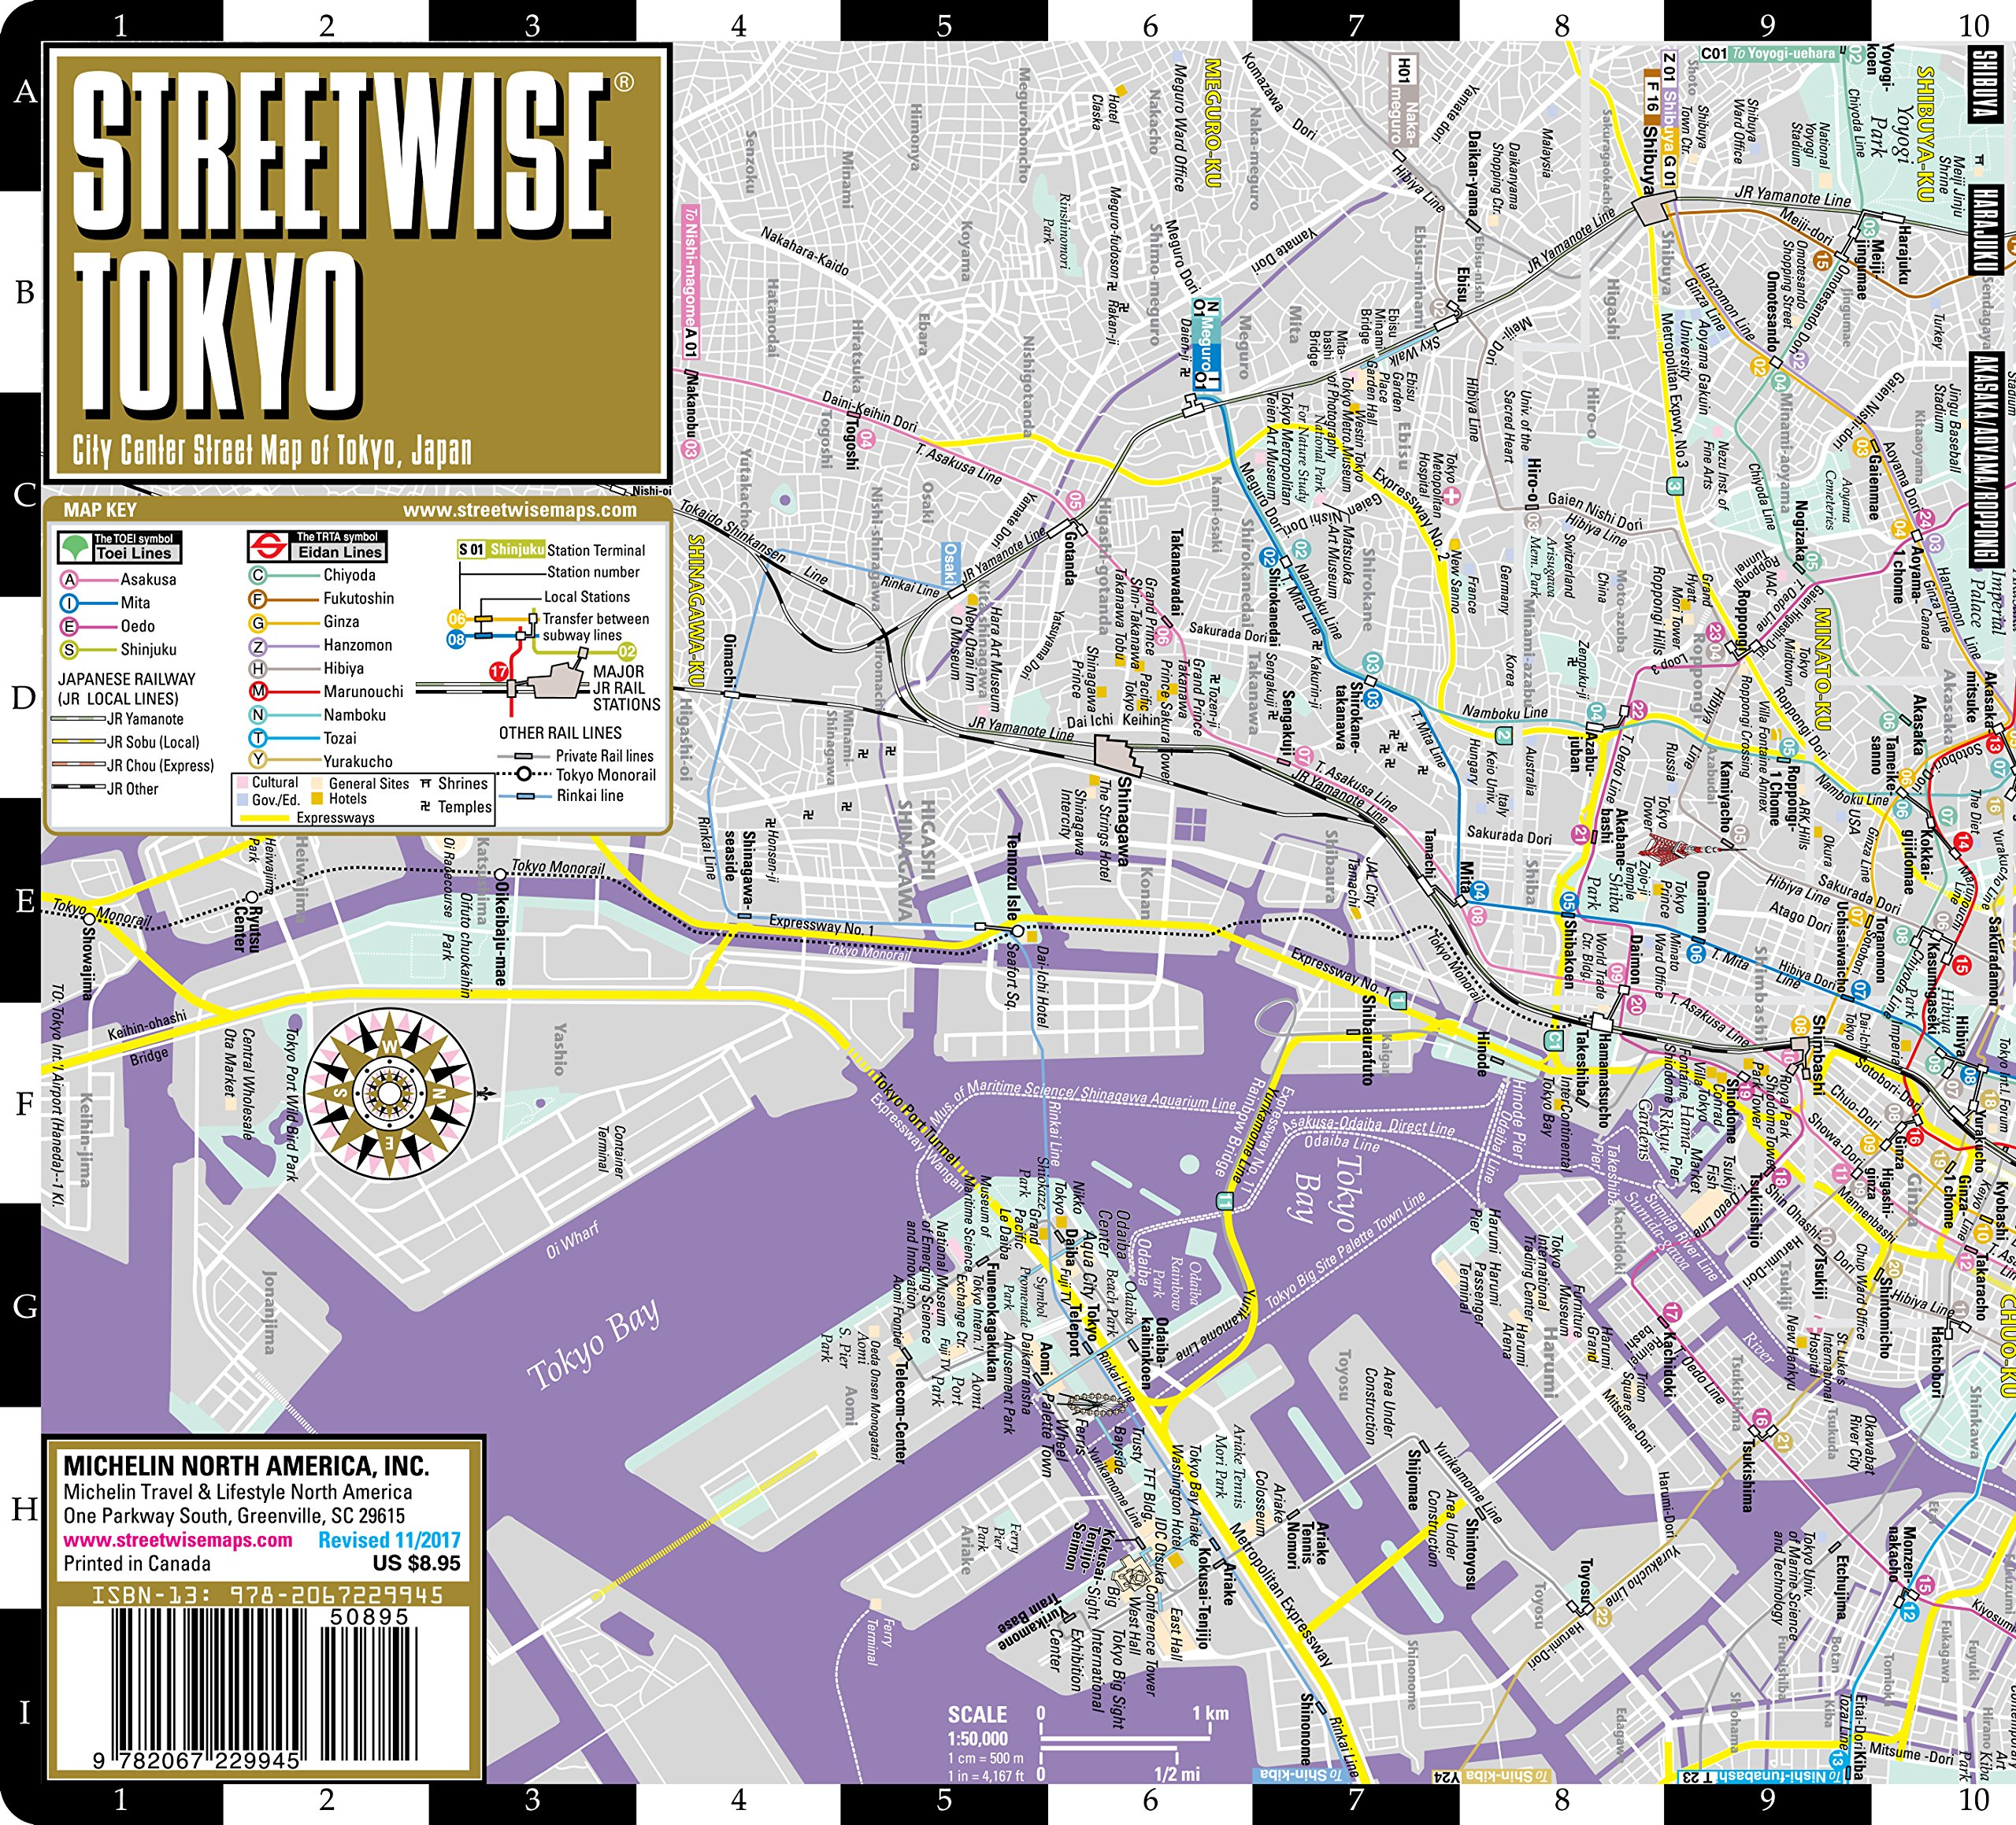 Tokyo Station Subway Map.Streetwise Tokyo Map Laminated City Center Street Map Of Tokyo